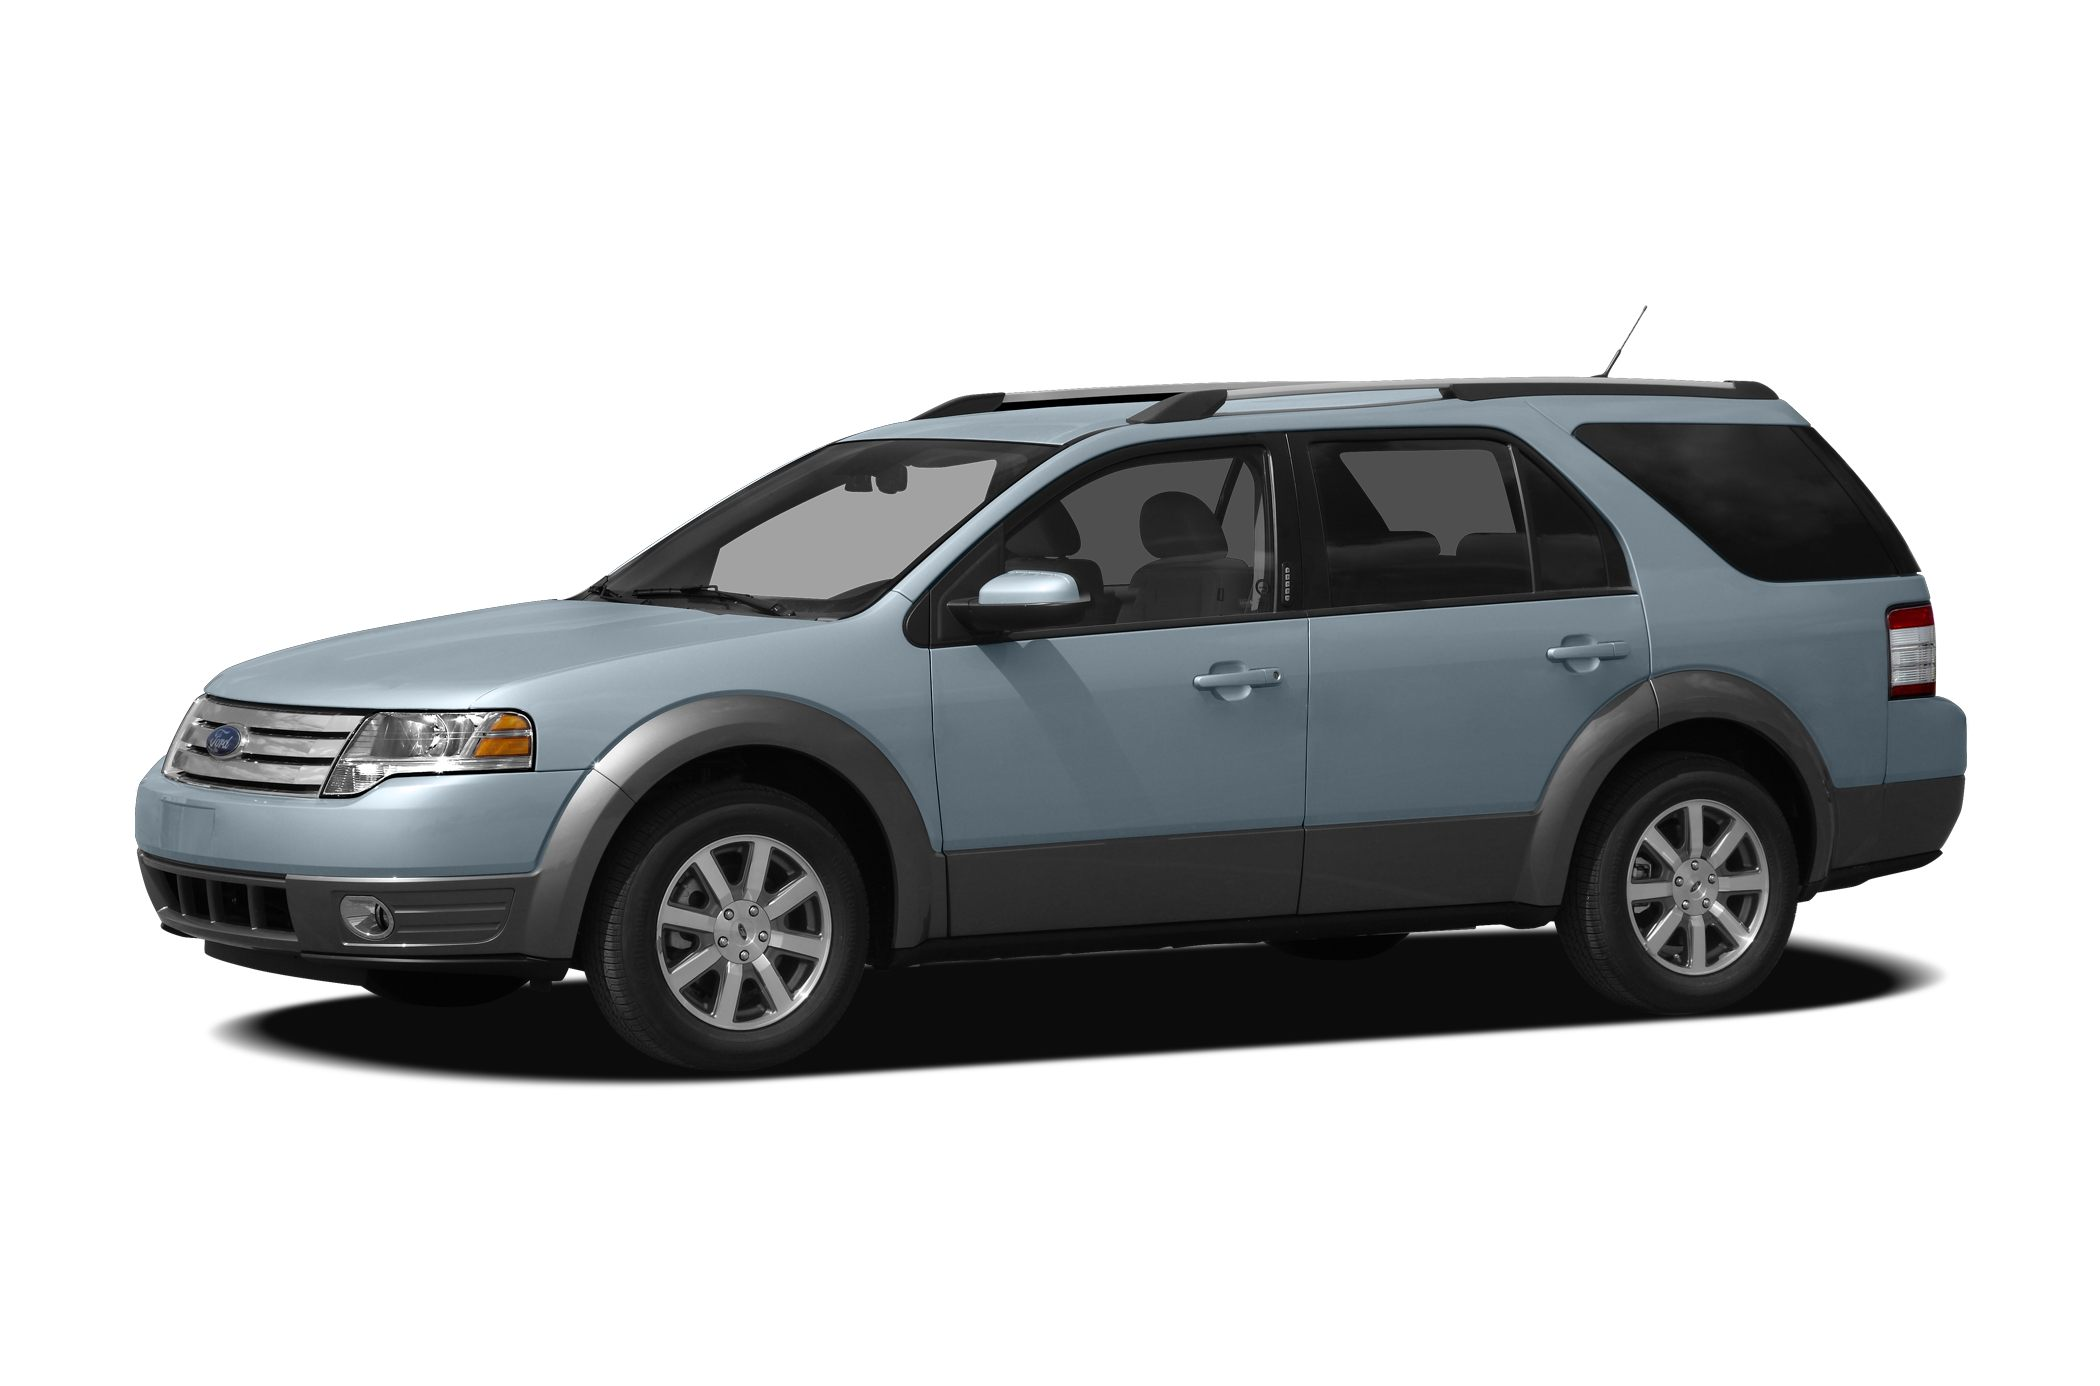 2008 Ford Taurus X SEL SUV for sale in Marquette for $9,995 with 90,770 miles